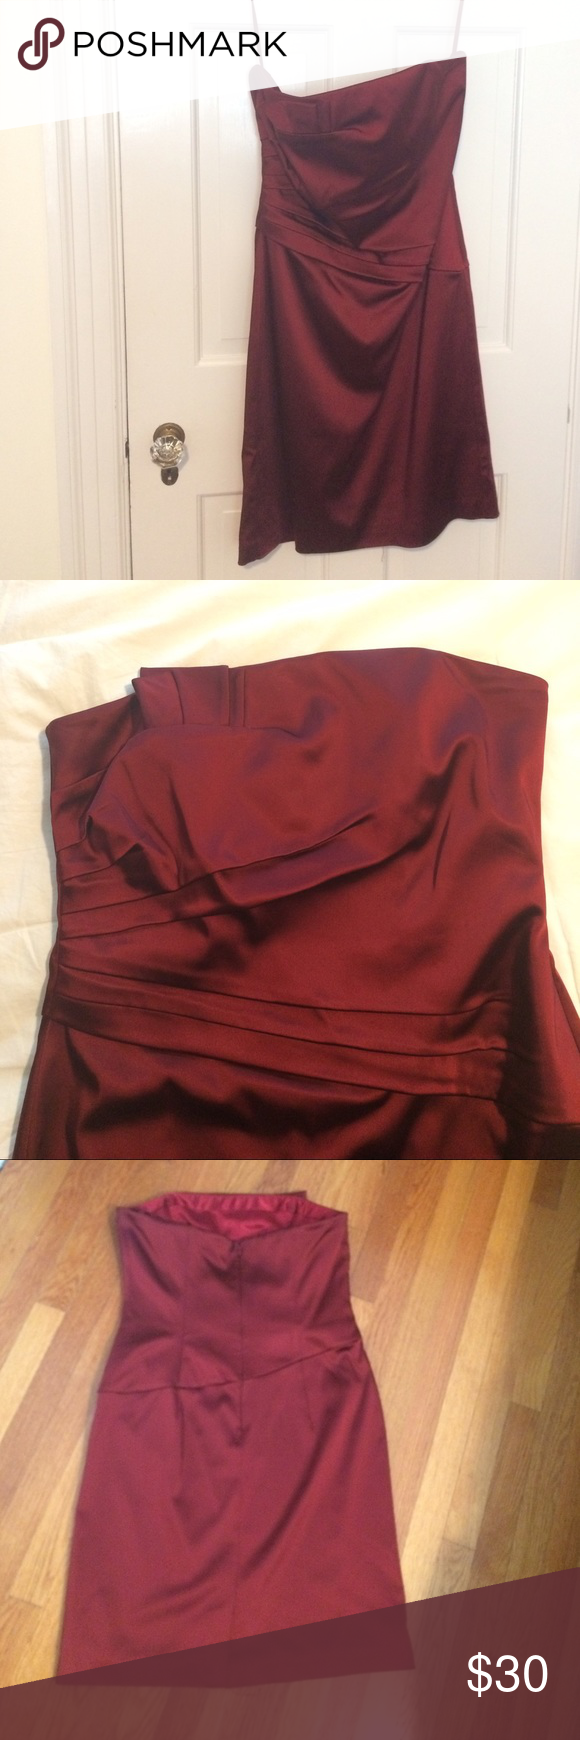 White House Black Market size 12 strapless dress Satin strapless dress in wine from White House Black Market- beautiful for fall wedding or winter event. White House Black Market Dresses Strapless